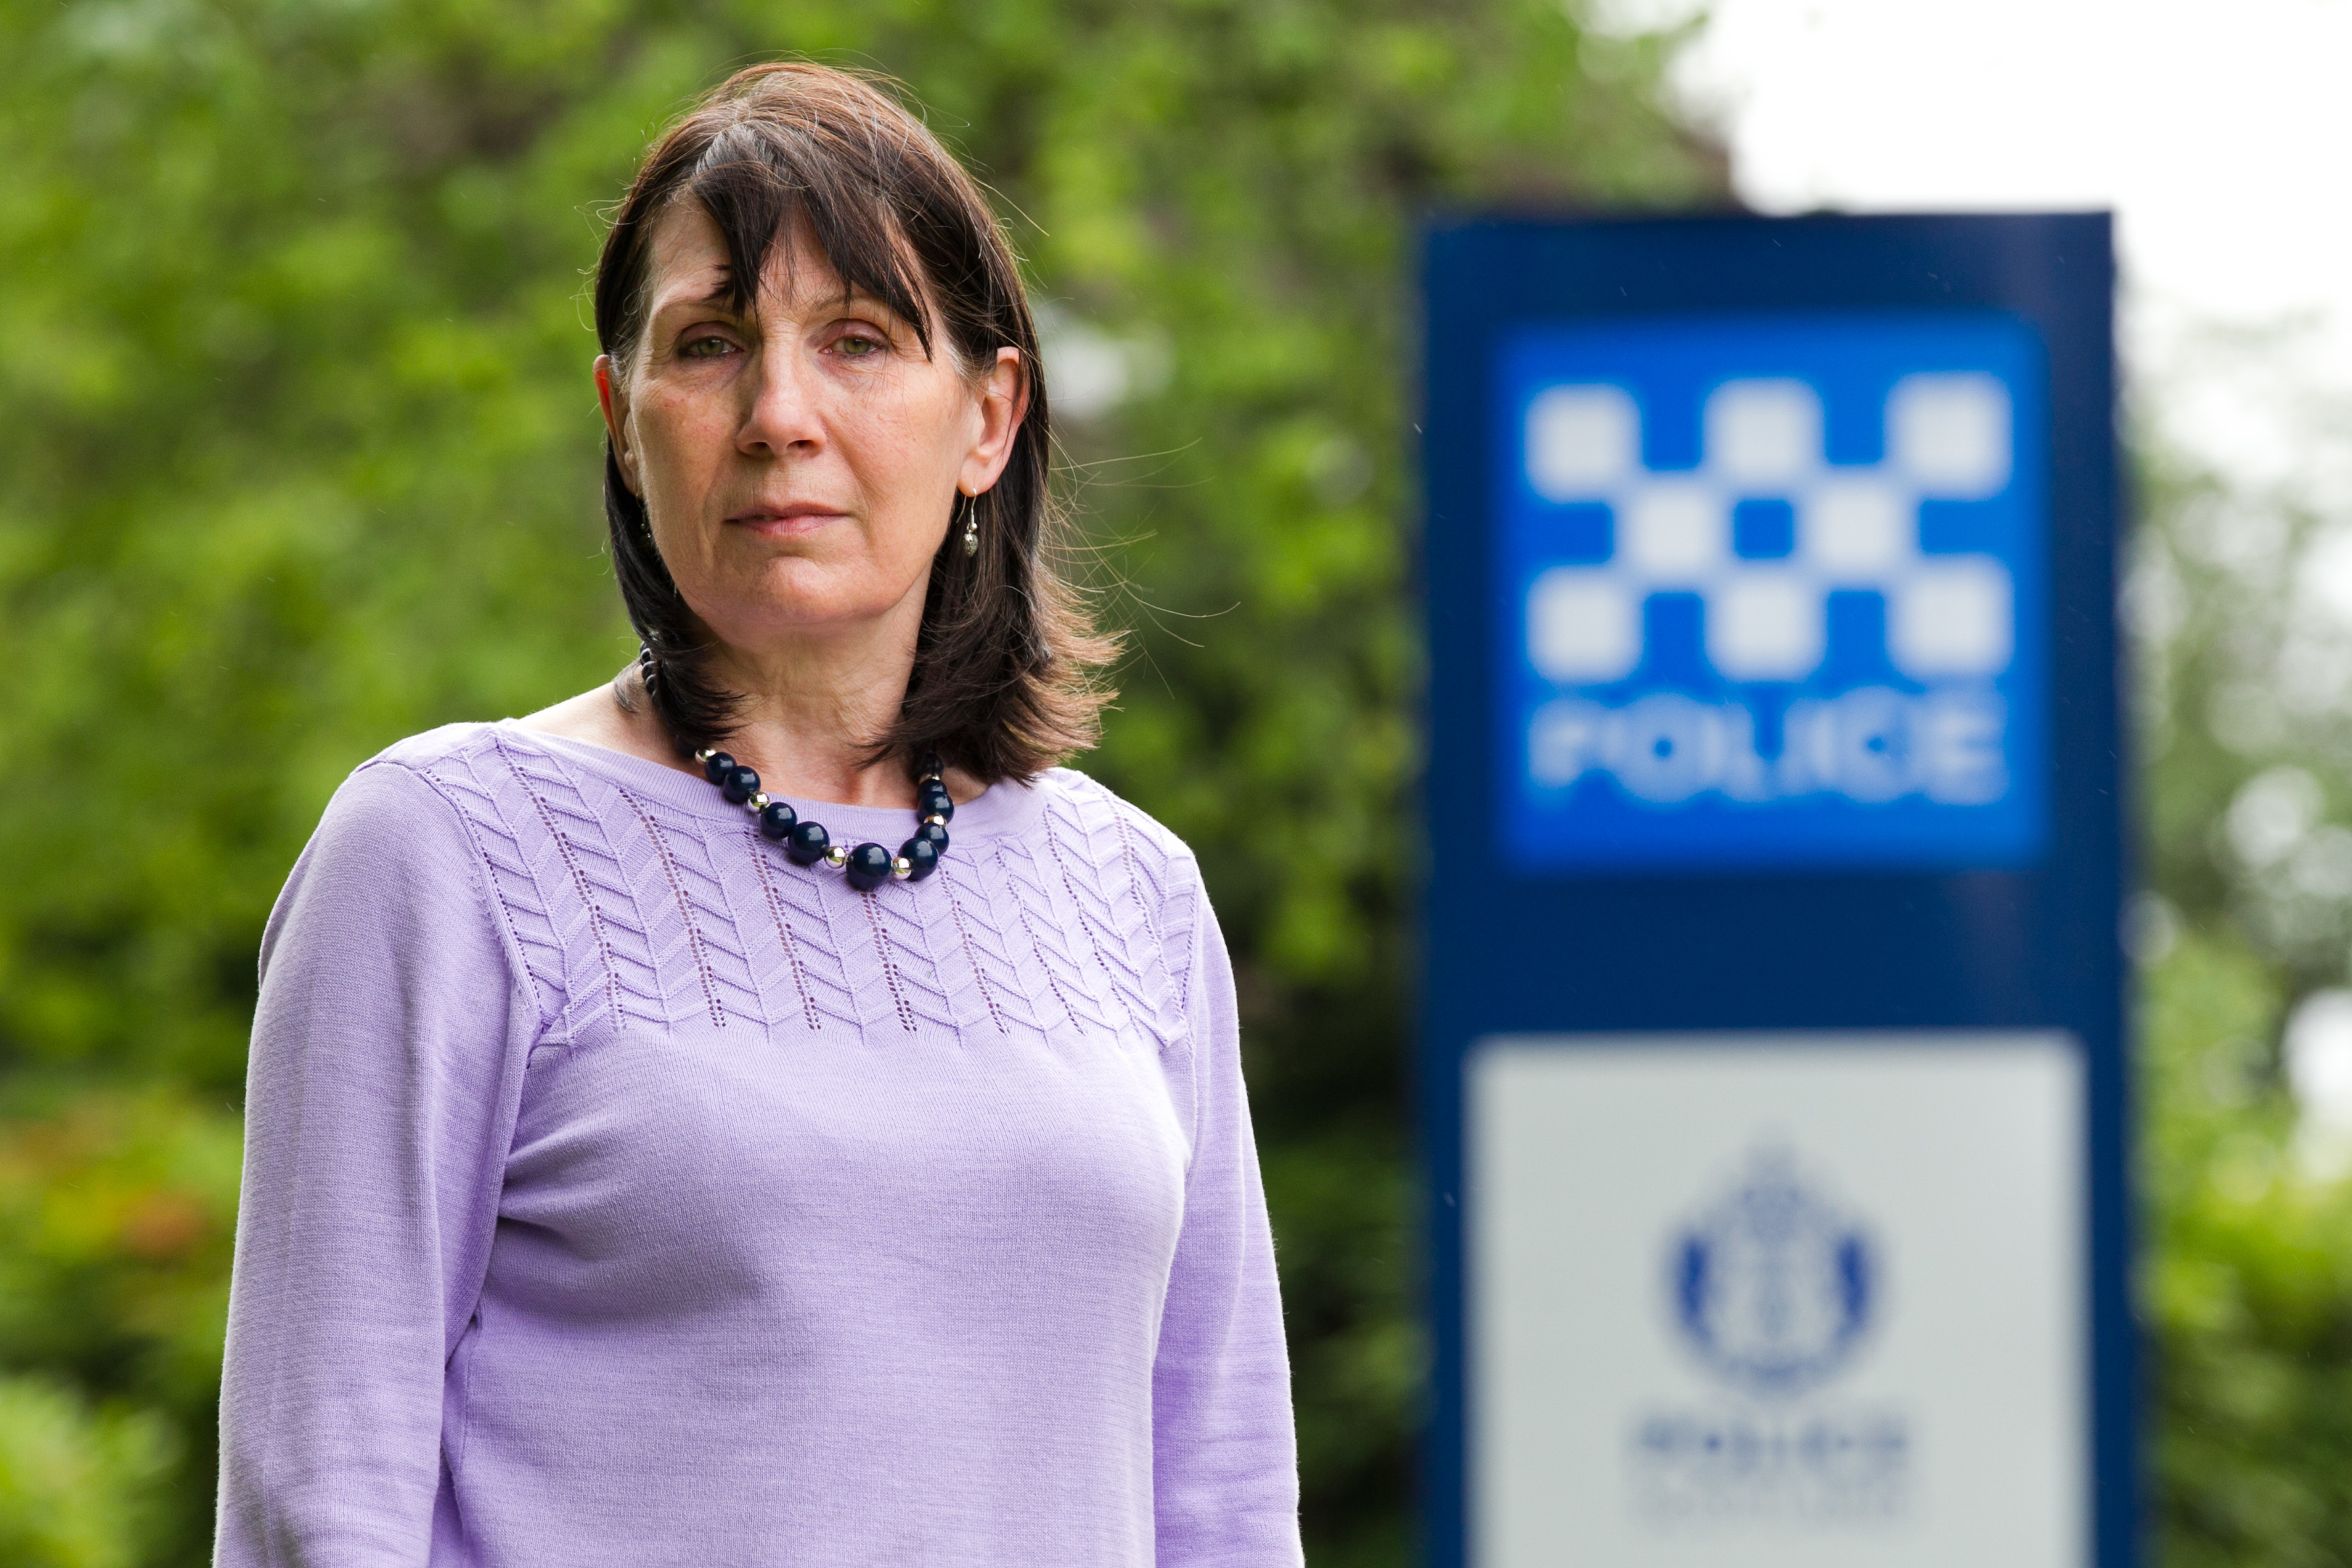 Jennifer Phibb had to wait for nearly an hour for police to come to her home (Andrew Cawley / DC Thomson)